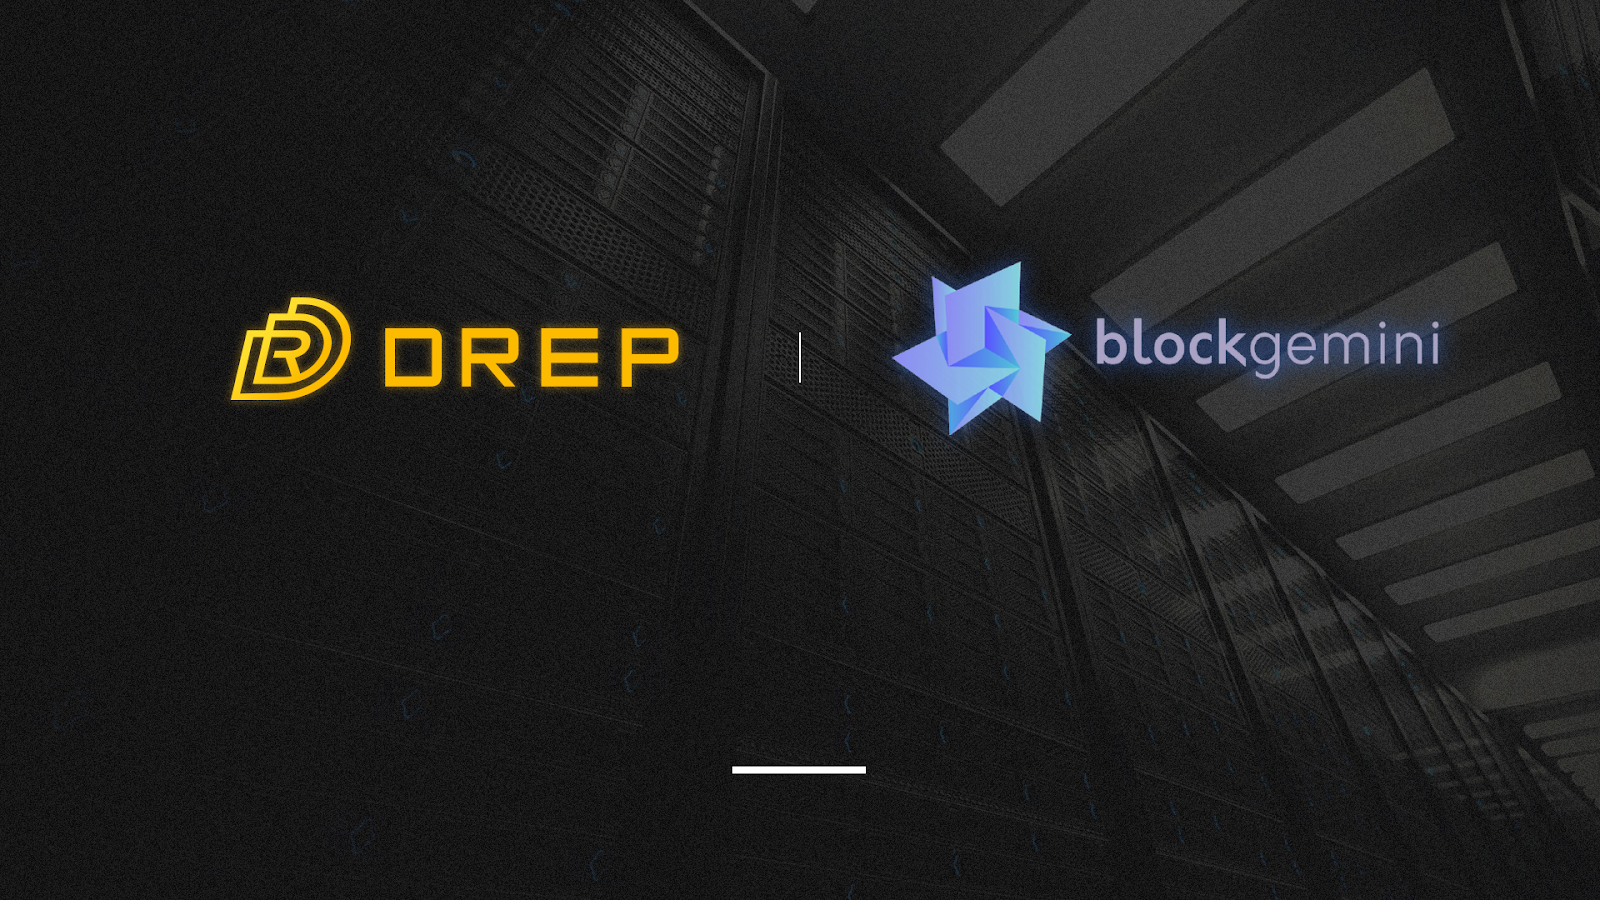 DREP to Partner with Dubai Blockchain Solution Provider Block Gemini and Support Dubai's 2020 Blockchain Strategy